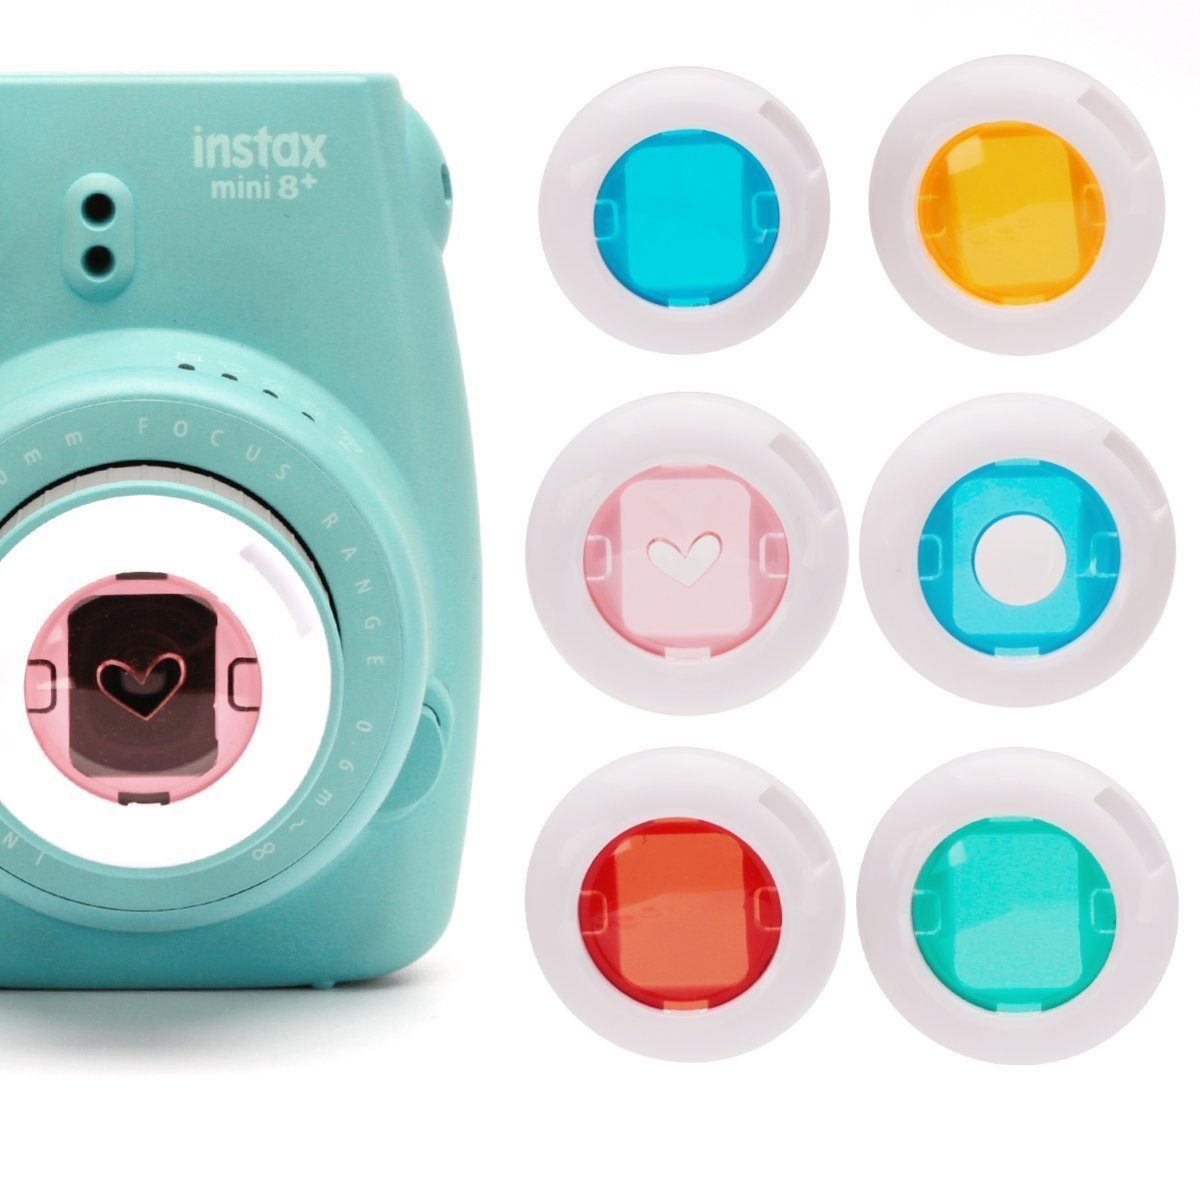 Colored Filter Close-Up Lens for Fujifilm Instax mini 9 Instax Mini 7S , Instax Mini 8 Cameras, Poloroid PIC 300, Instax hellokitty camera (Red /Blue Circle /Yellow /Green /Pink Heart) - 6 Pack